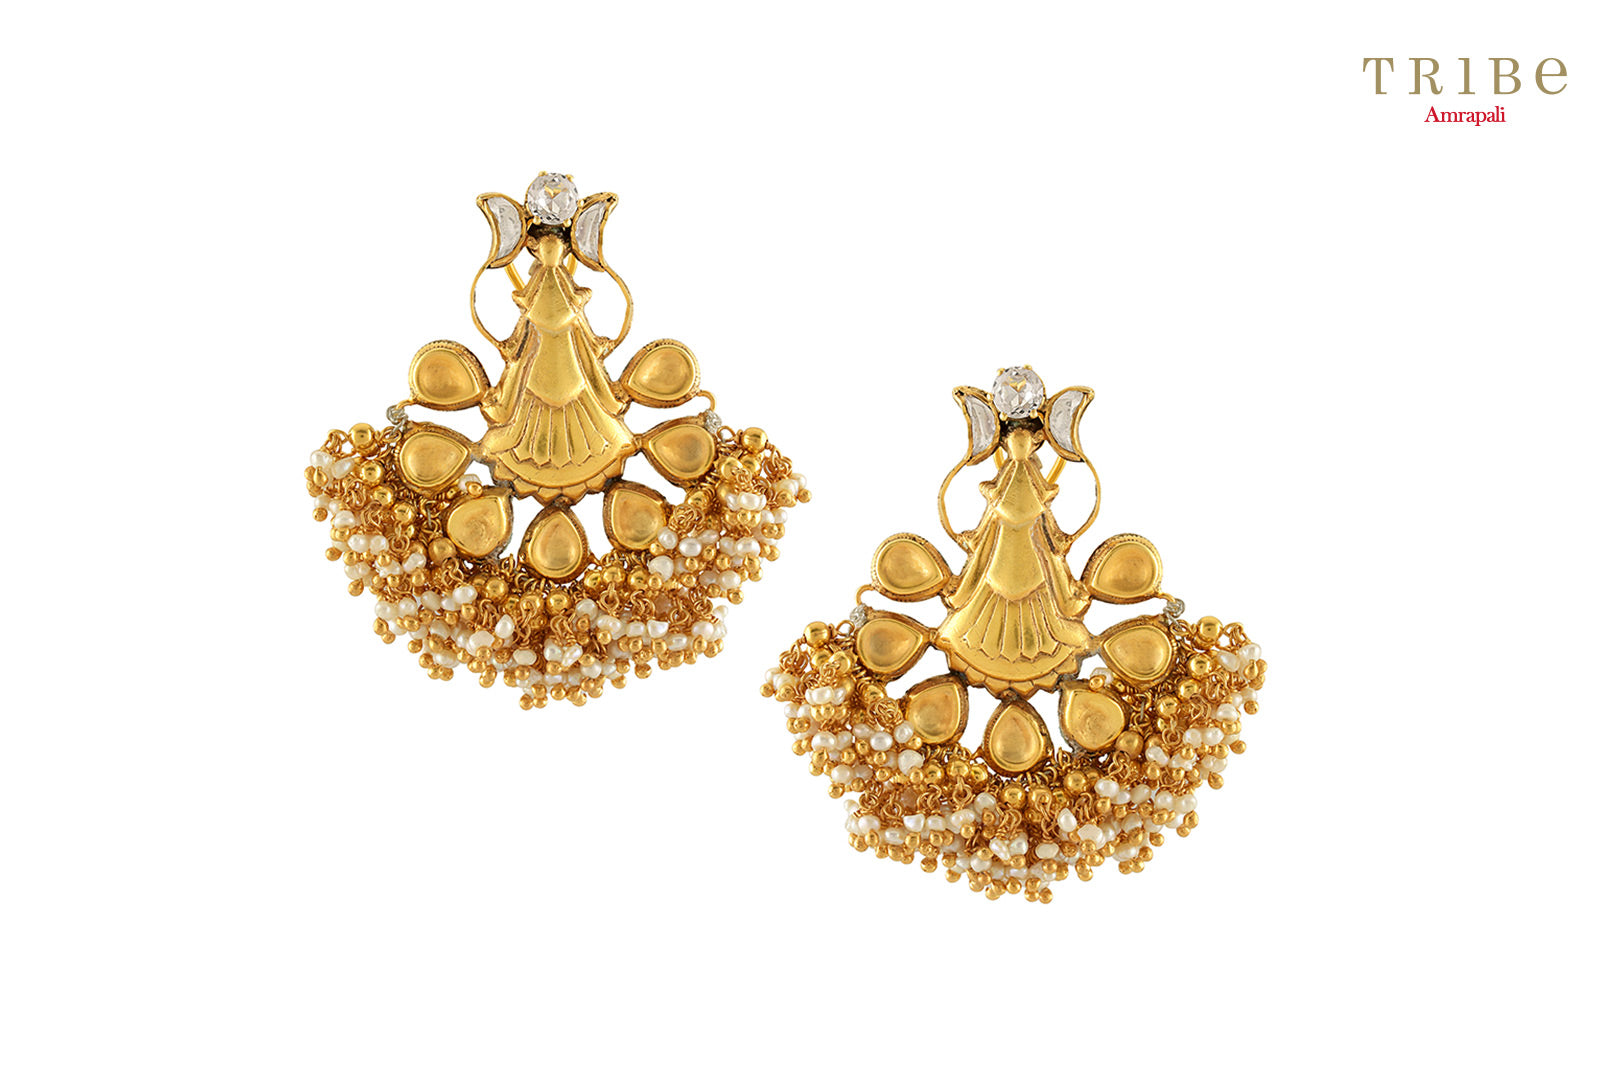 Tribe Amrapali silver gold plated crystal motif pearl cluster earrings buy online in USA.  If you are looking for Indian silver gold plated jewelry in USA, then Pure Elegance clothing store is your one stop solution, shop now.-full view